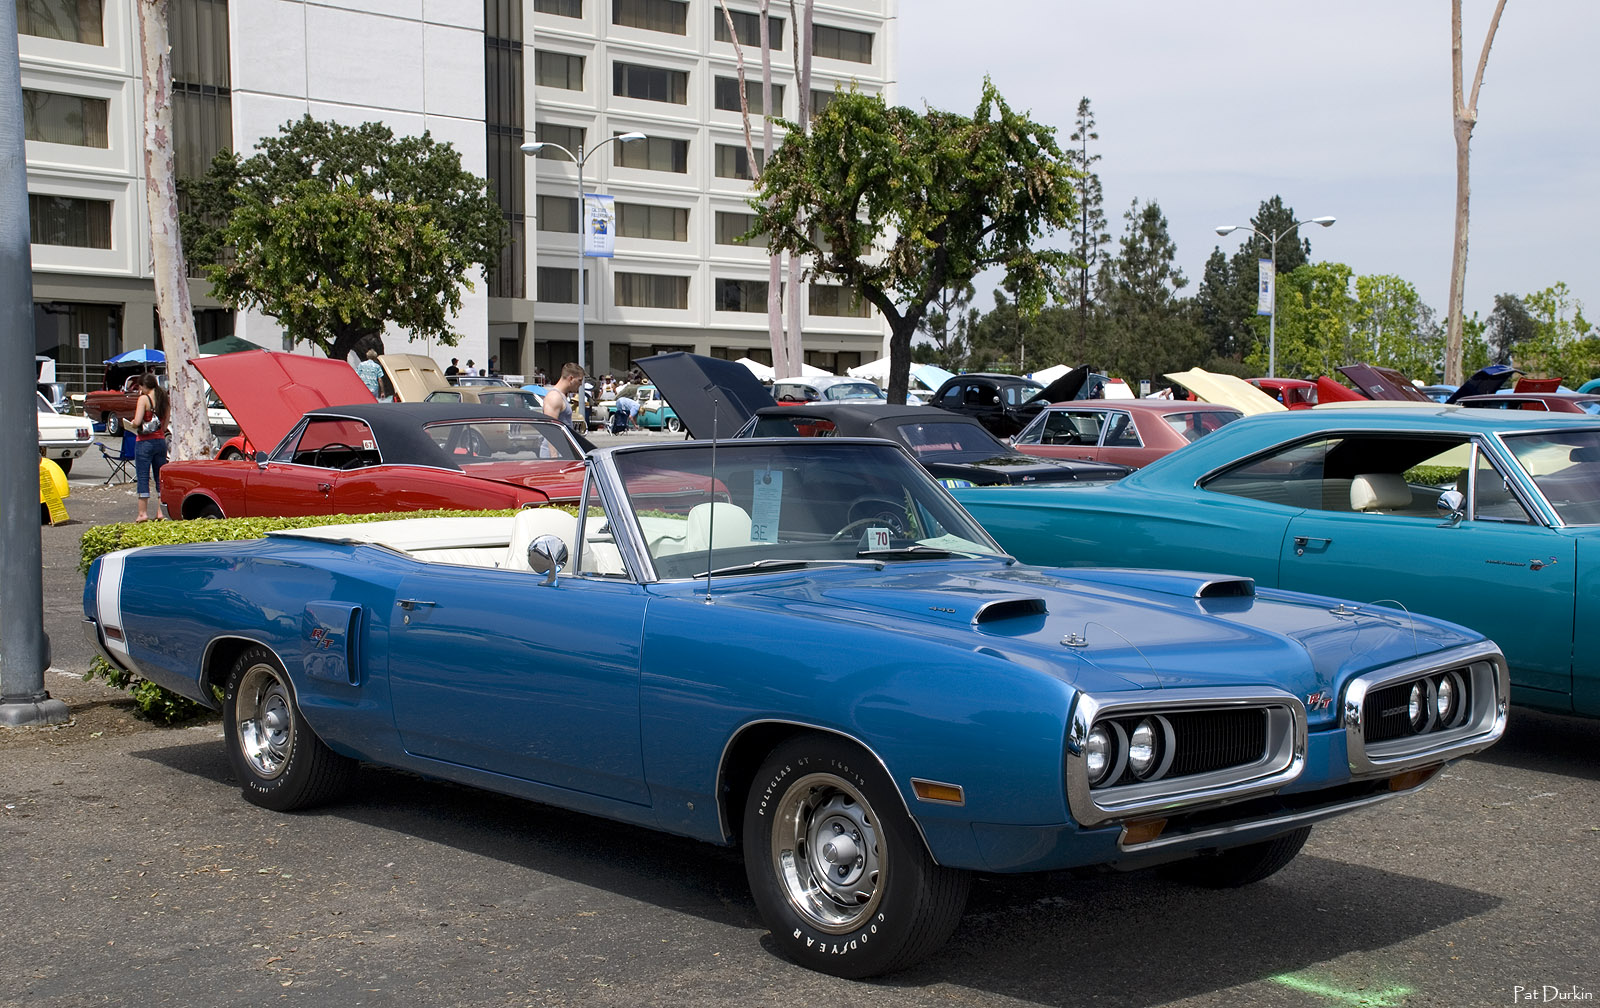 hight resolution of 1970 dodge coronet rt convertible with top down white over bright blue po